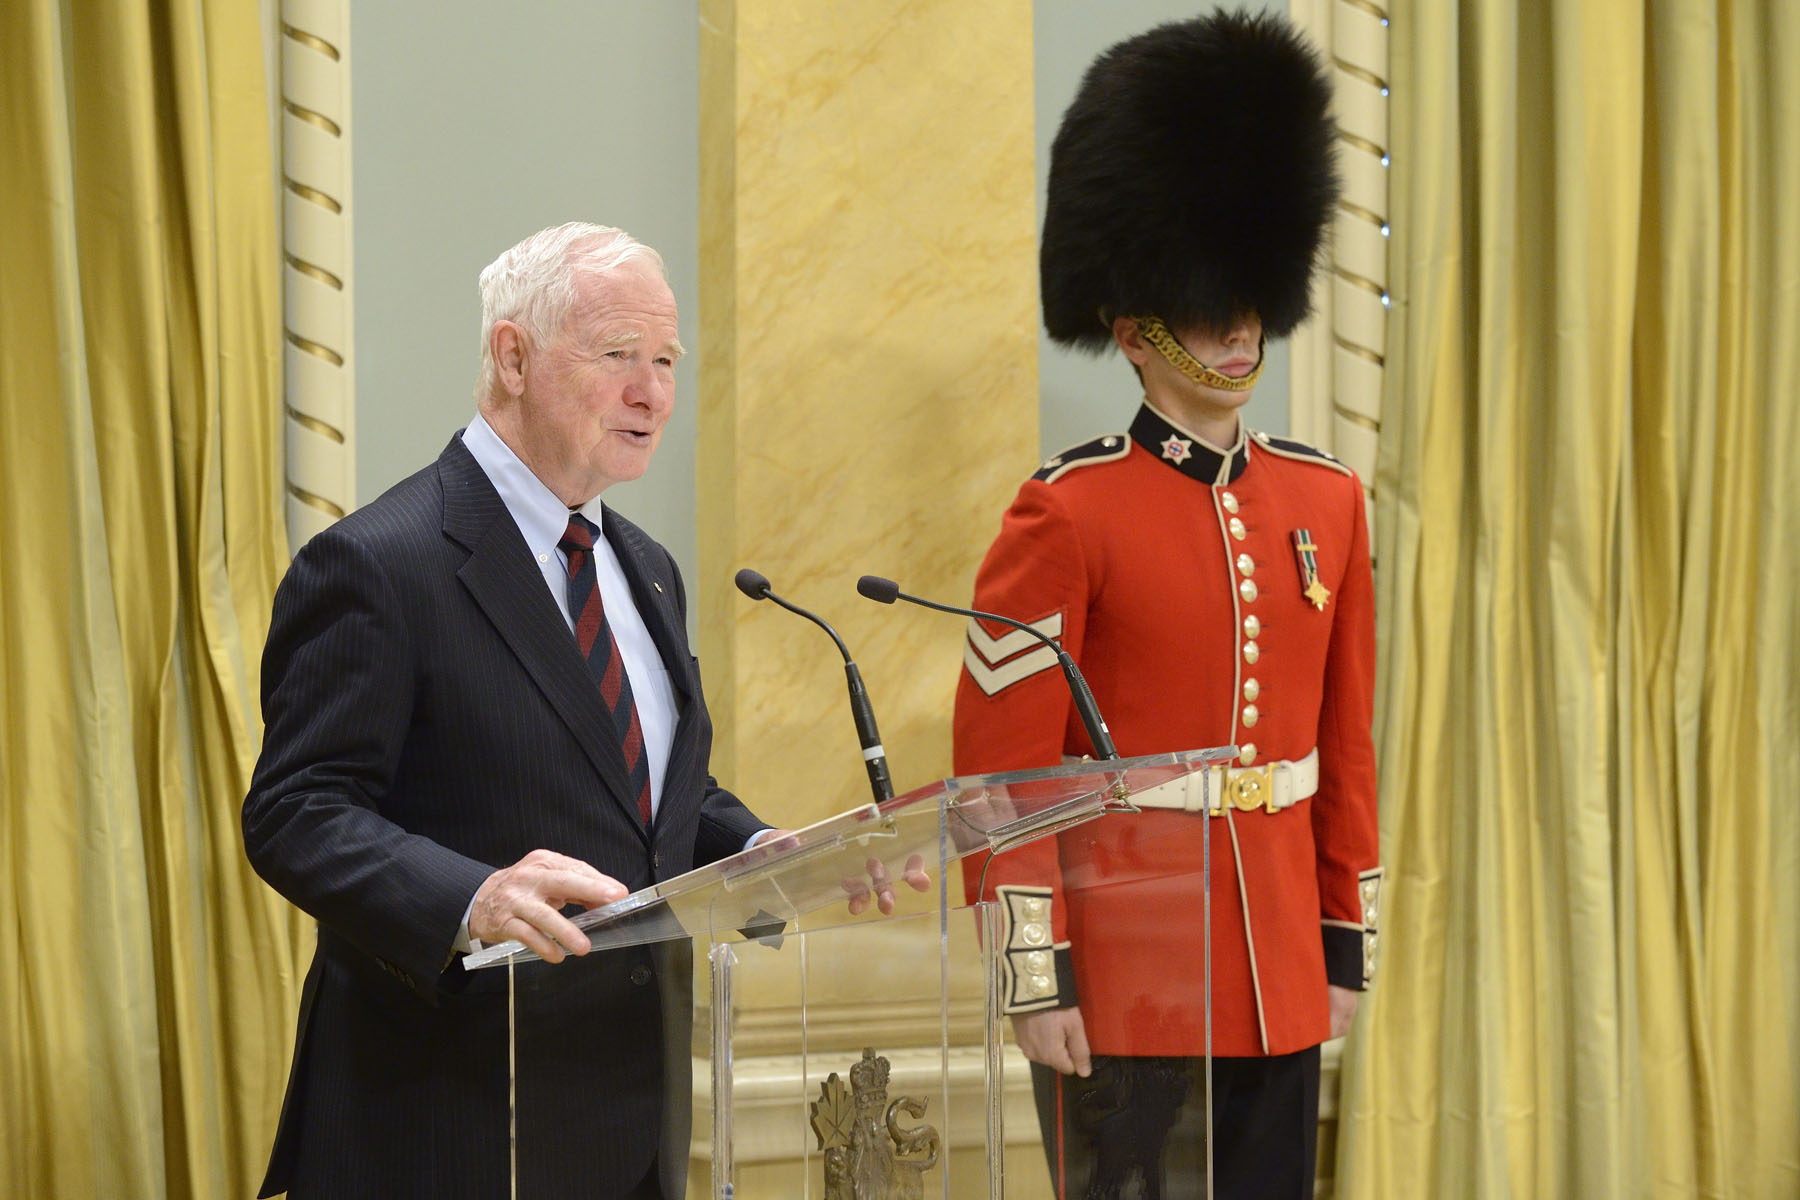 """Each of you has been chosen to represent the people of your respective nations, and to work with Canadians in search of common ground,"" said the Governor General. ""It is an important public service. You know that positive international relations are built on trust and respect, and that these sentiments are earned and renewed, or eroded, on a daily basis."""